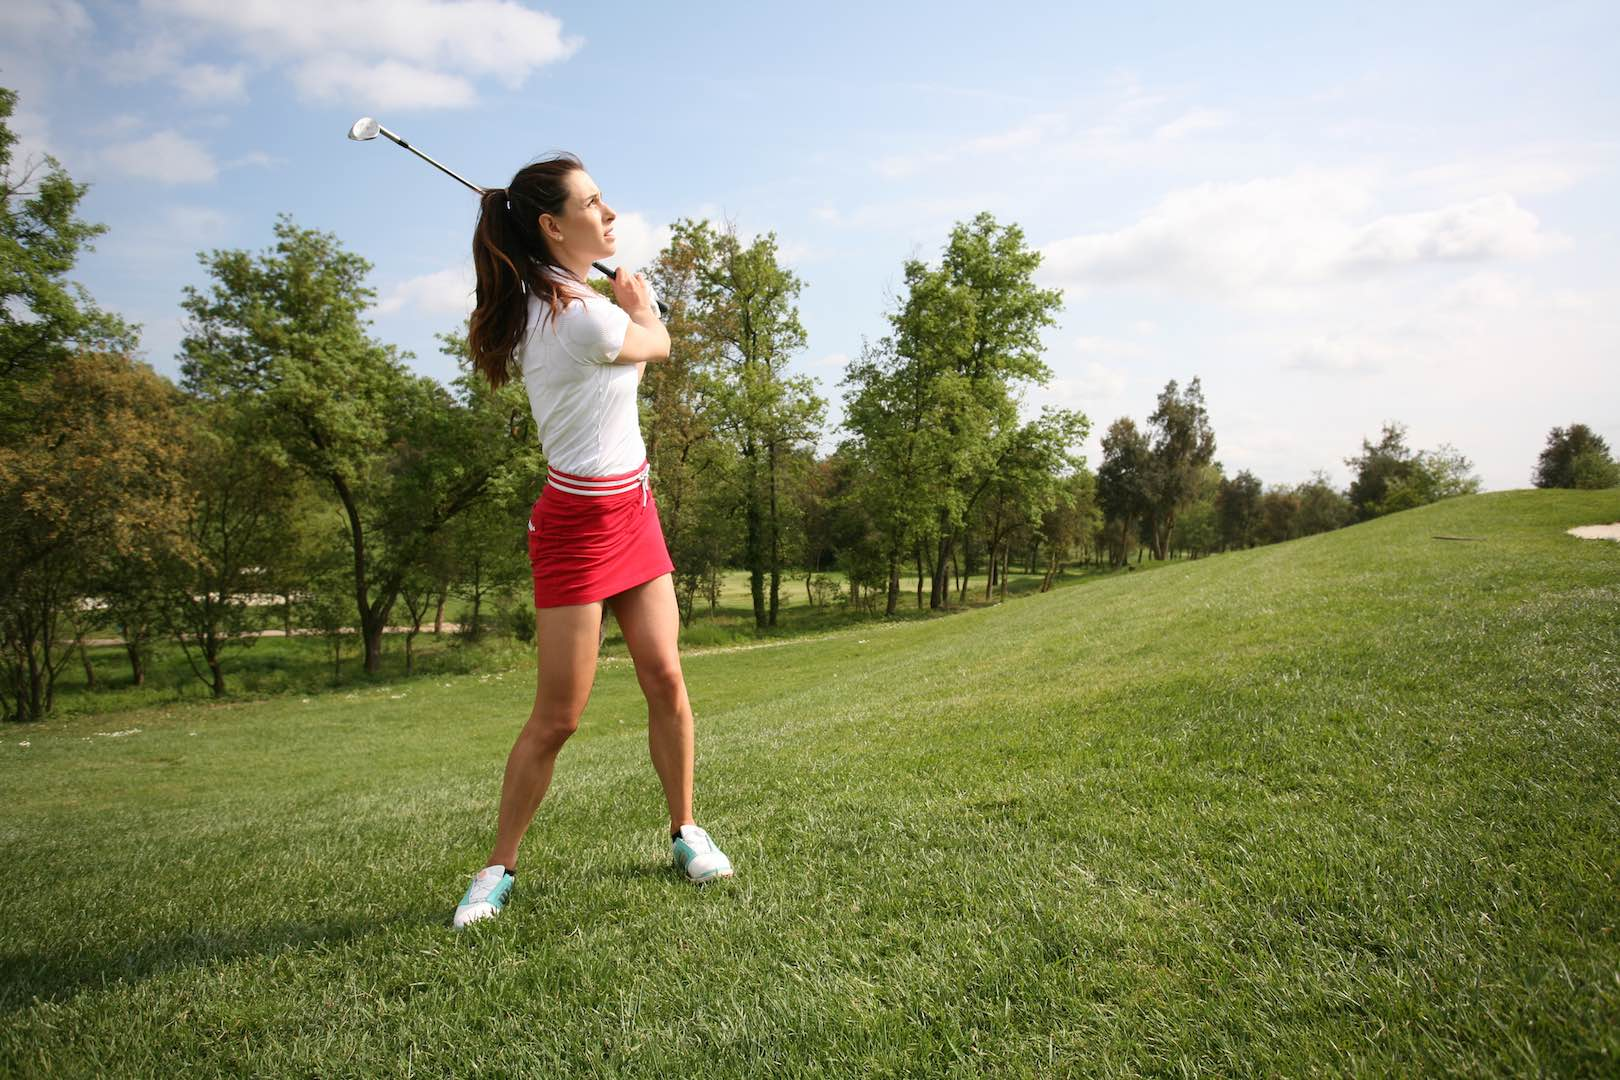 New: Maria Verchenova golf instruction